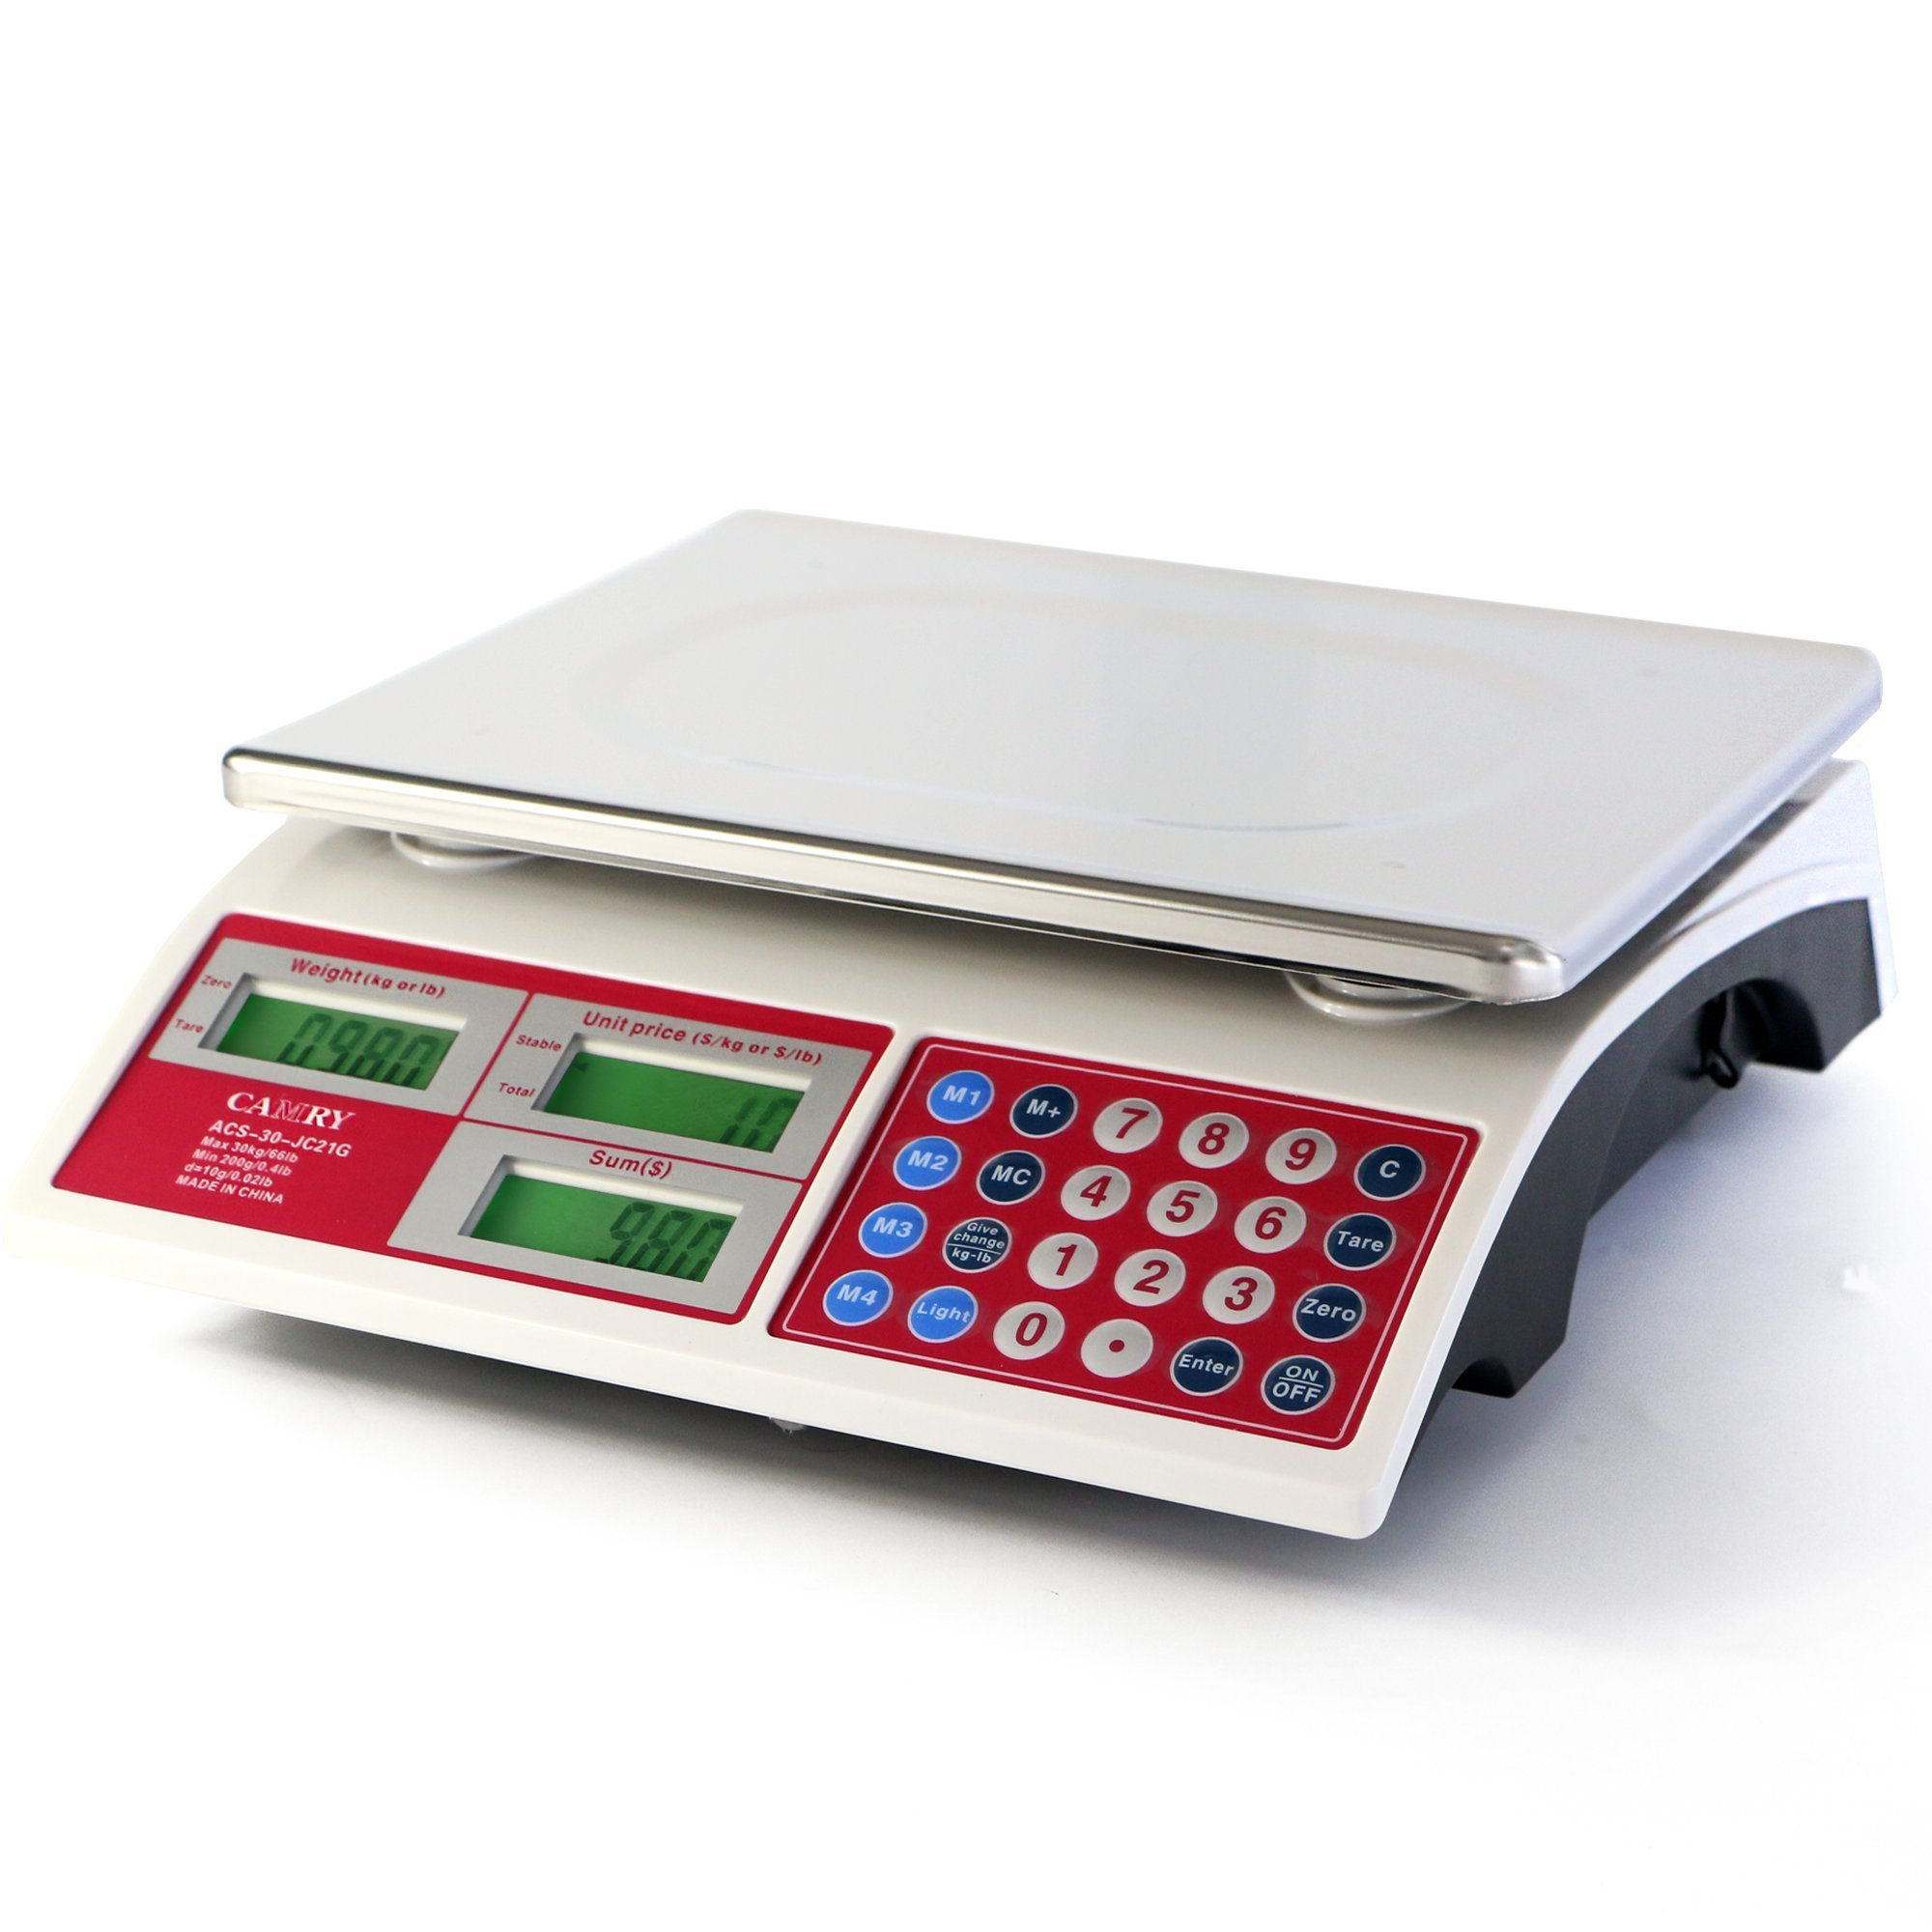 Camry Digital Commercial Price Scale 66lb / 30kg for Food Meat Fruit Produce with Green Backlight LCD Display 15 Inches Platform Battery Included Not For Trade by CAMRY